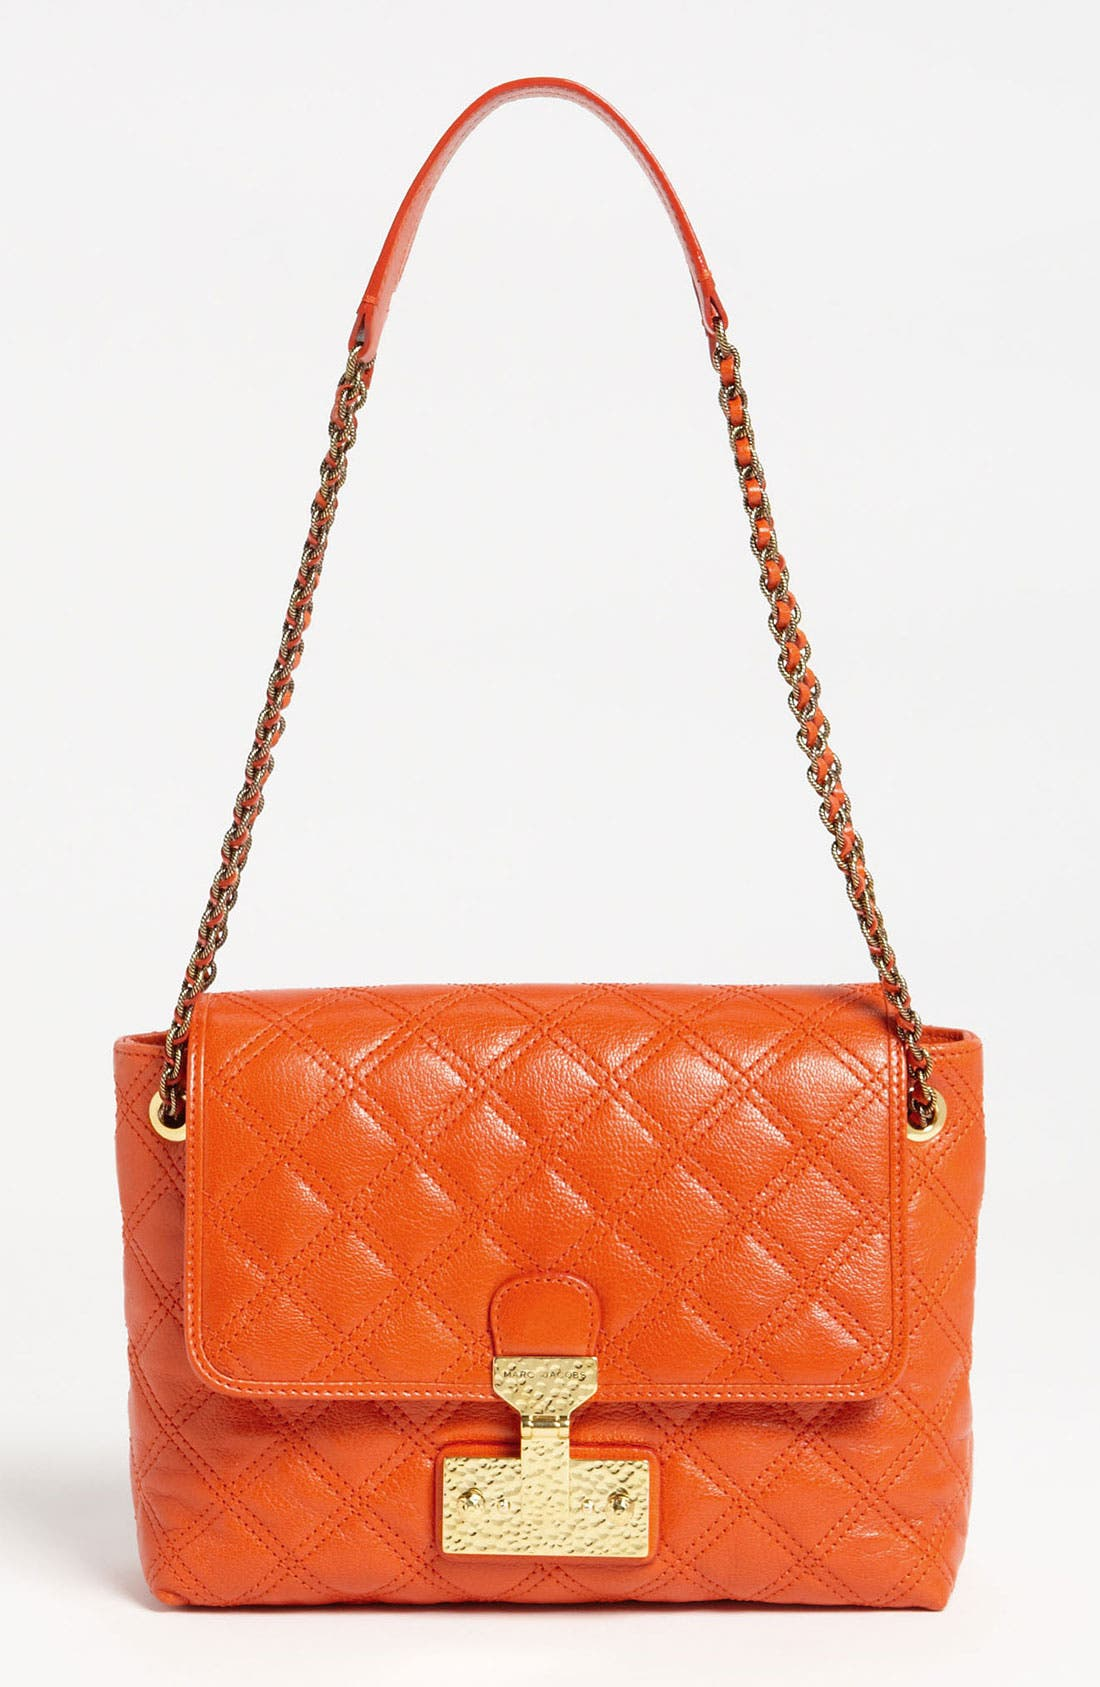 Main Image - MARC JACOBS 'Large Baroque Single' Leather Shoulder Bag